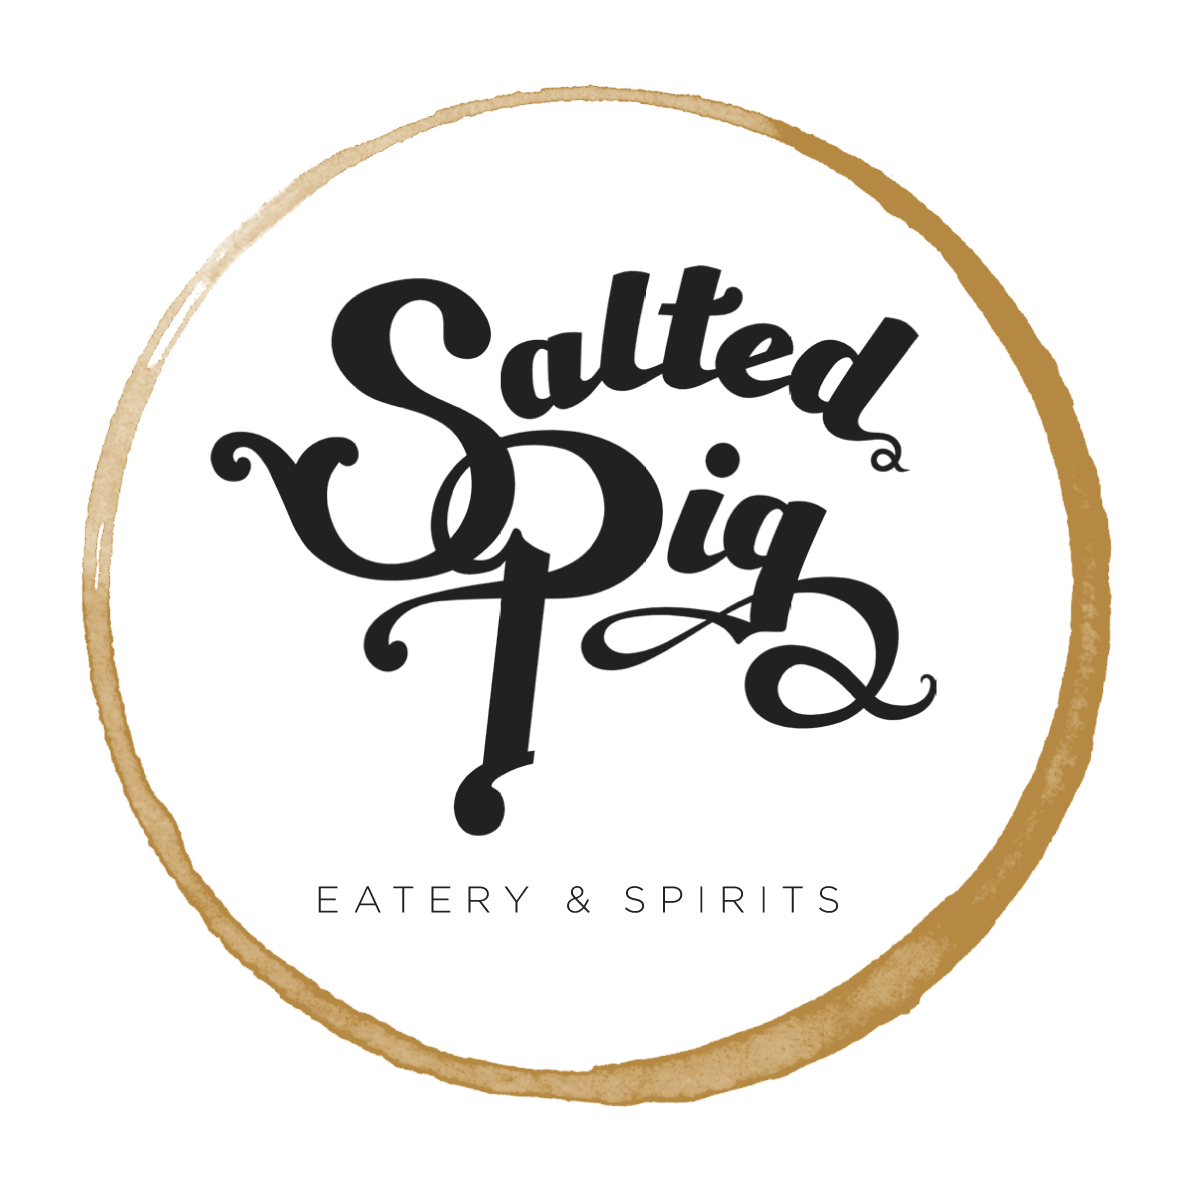 We had fun with this logo project and made several variations of the logo featuring hand-lettering and a circle that implies the ring left behind by a cocktail glass . . .